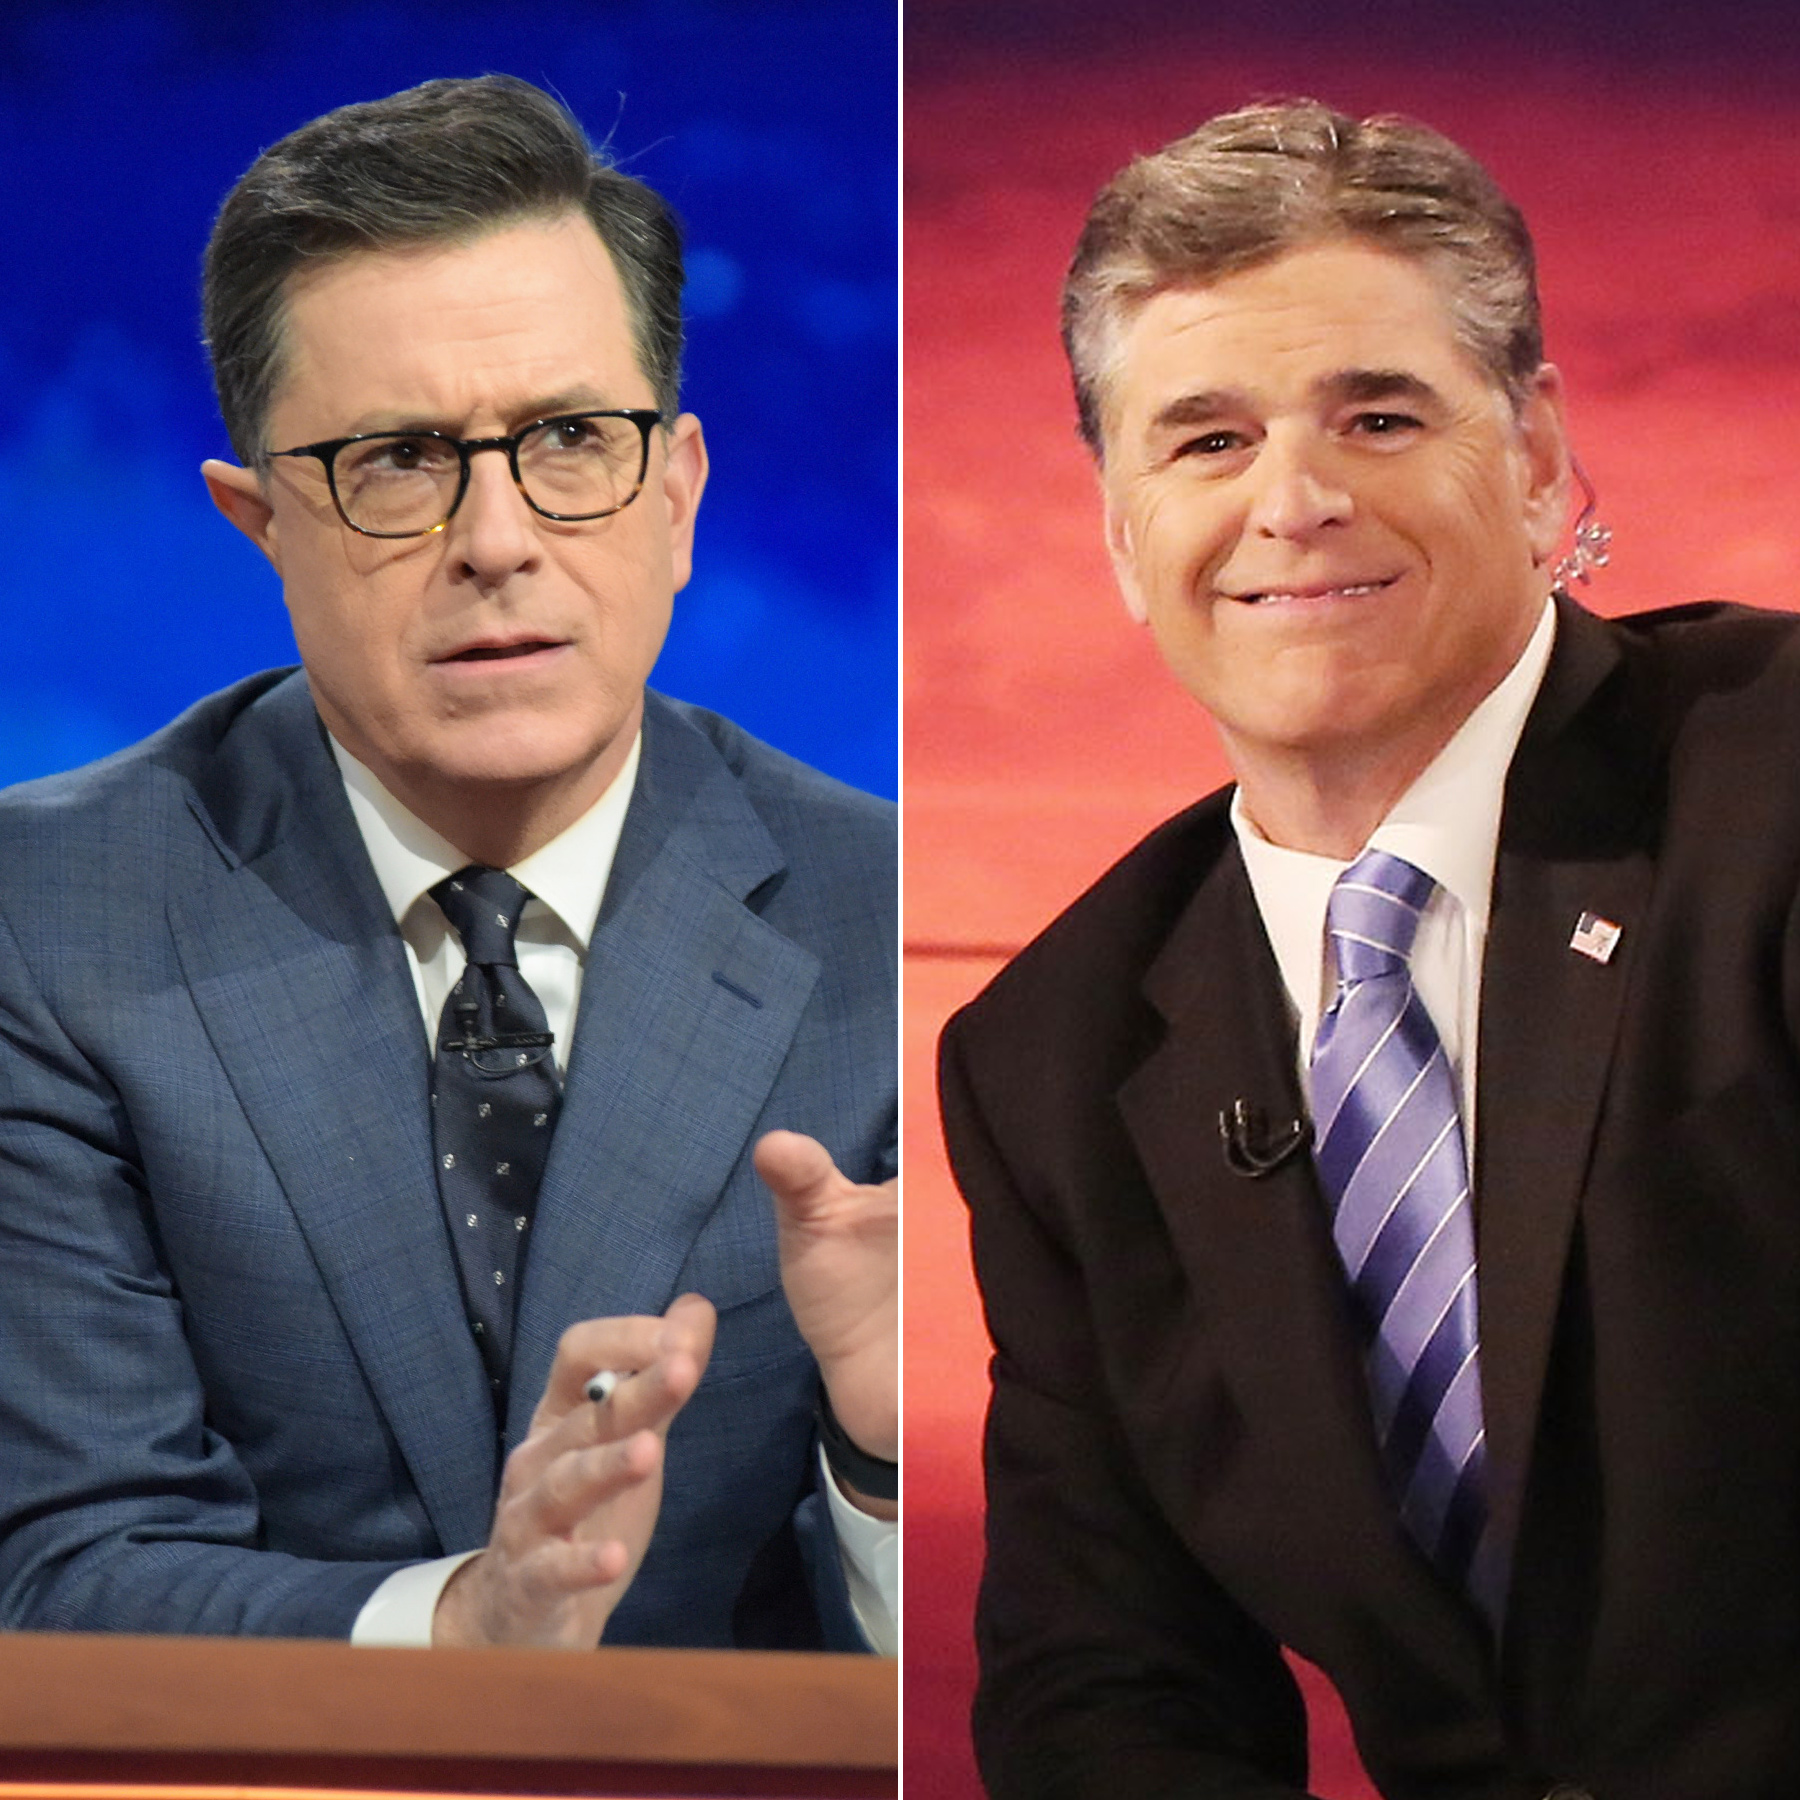 Stephen Colbert and Sean Hannity